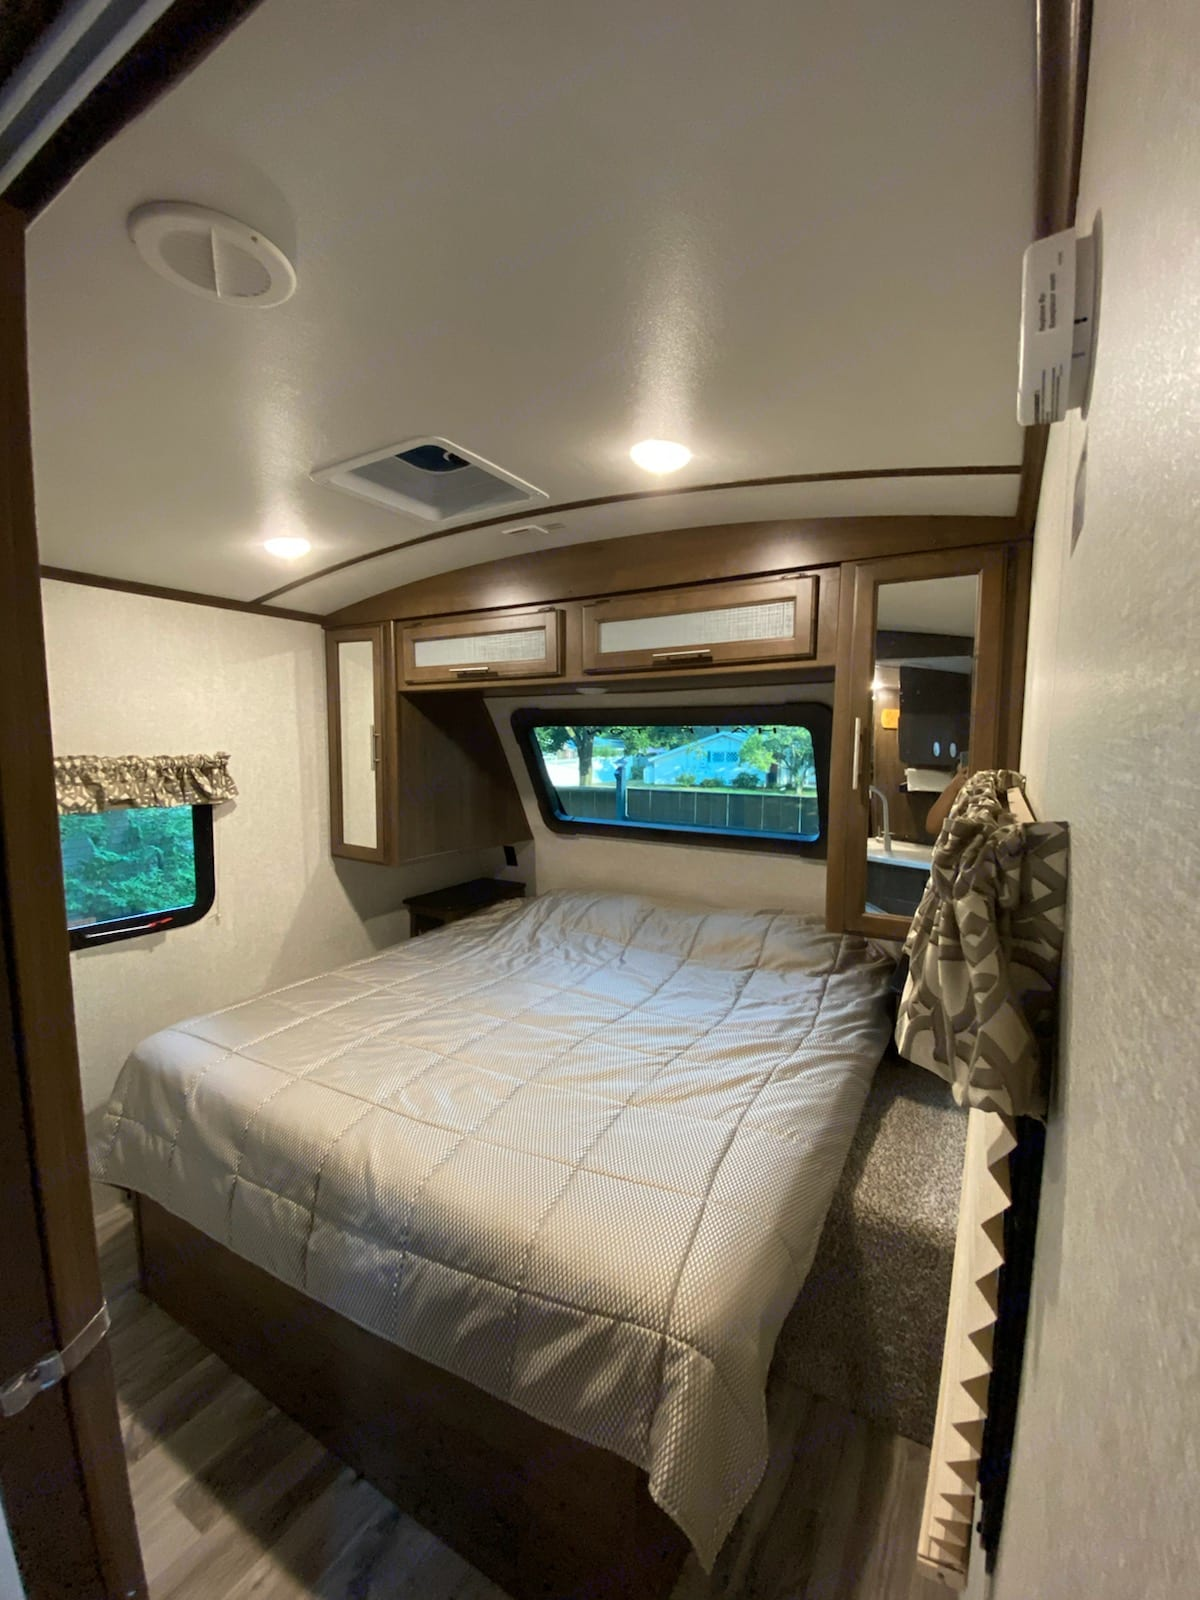 Bedroom with King sized mattress and tons of hanger and cabinet storage. Keystone Cougar Half-Ton 2019